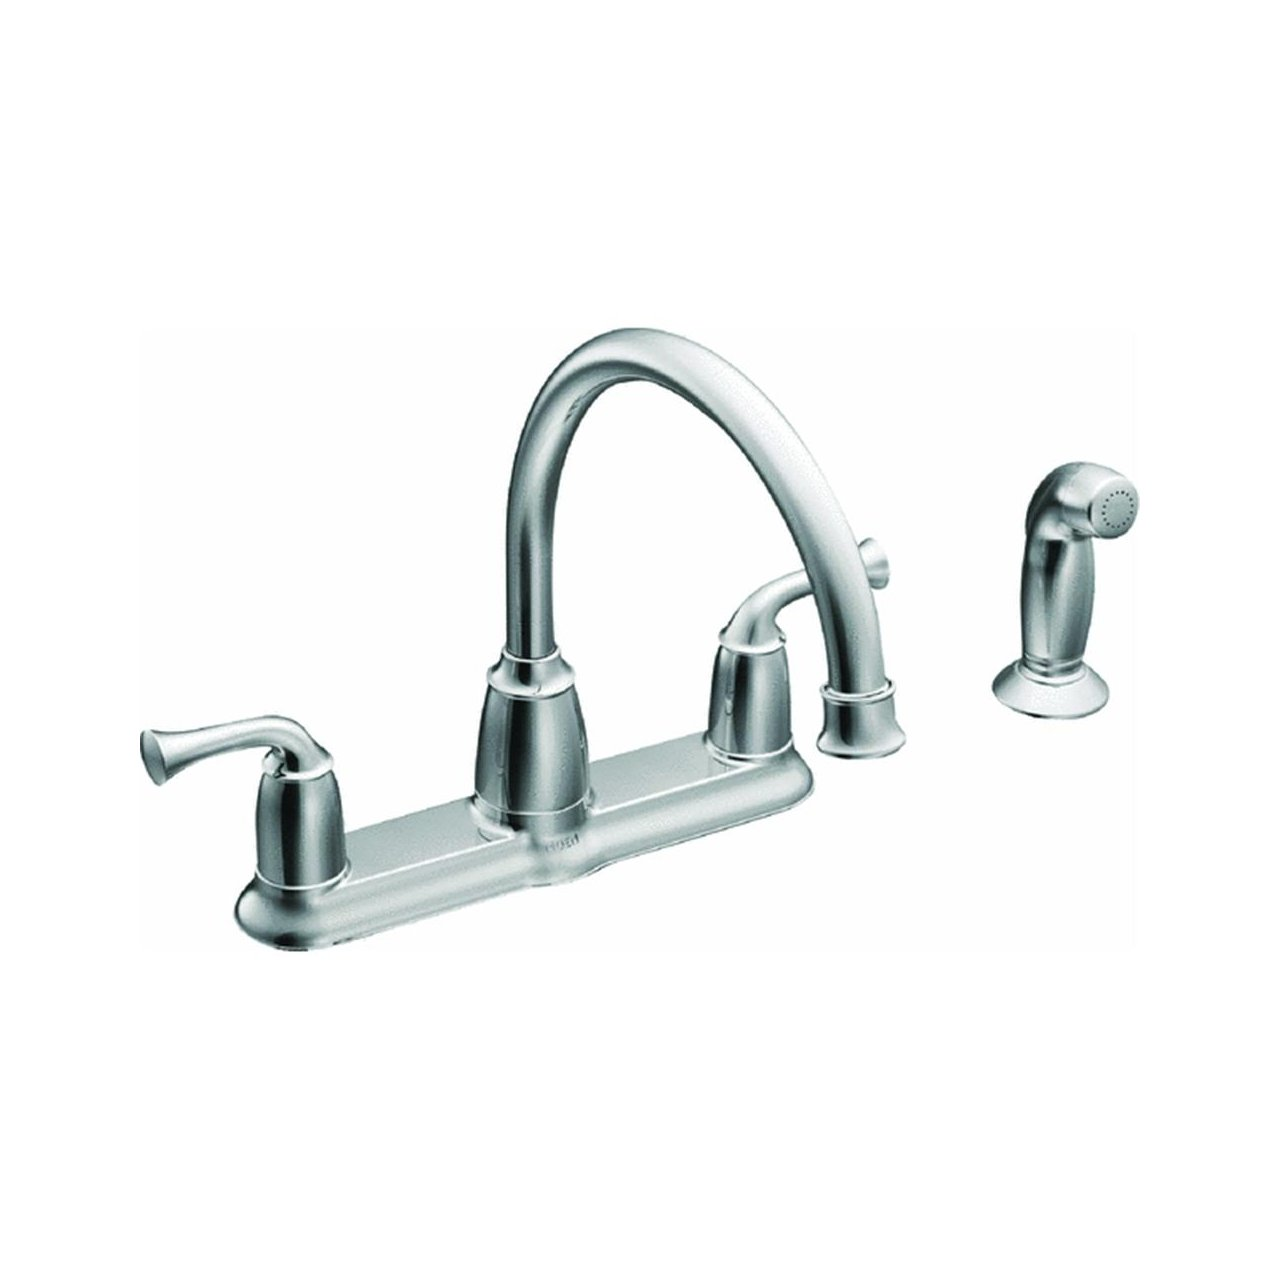 Moen CA87553 High-Arc Kitchen Faucet with Side Spray from the ...